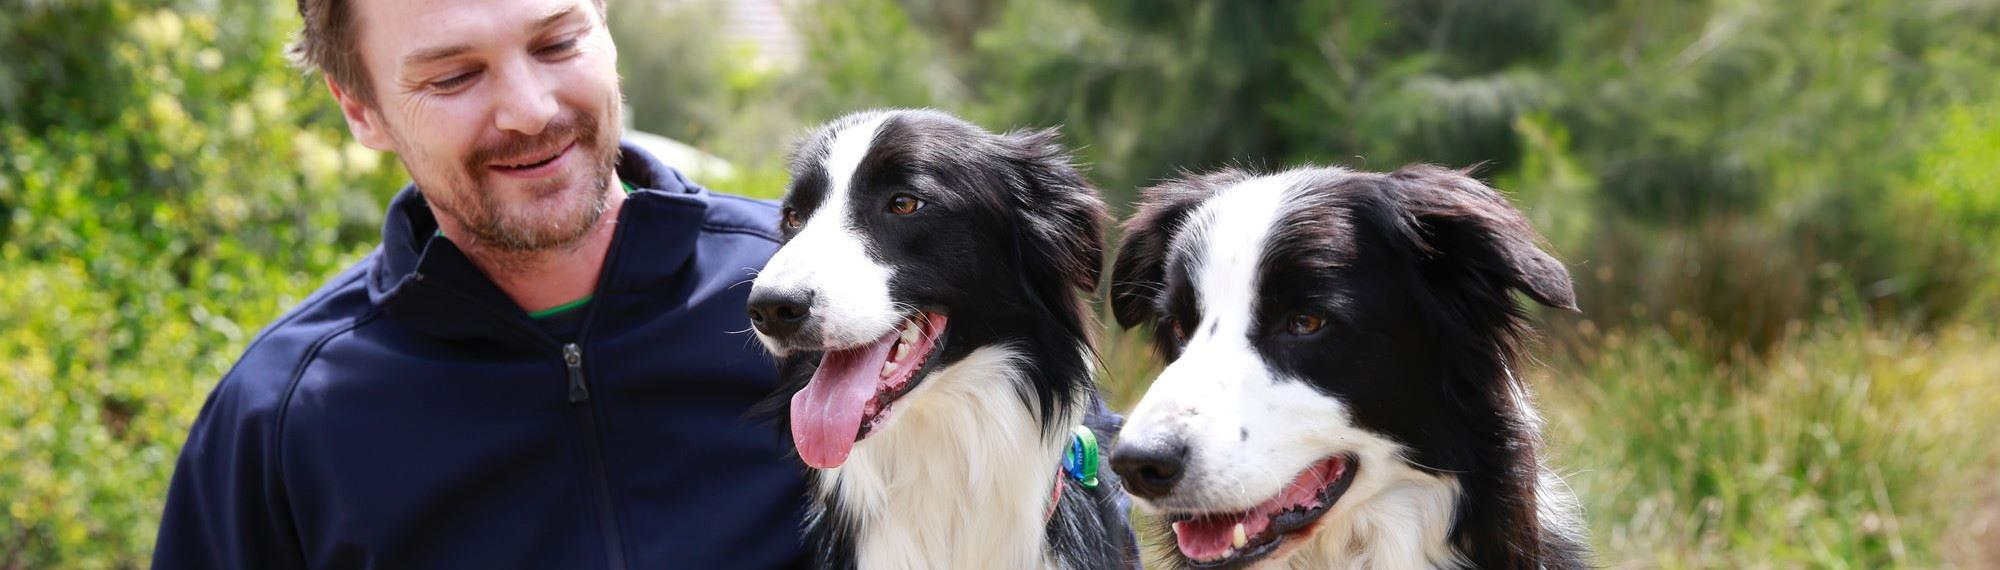 Two Border Collie faces looking towards camera while man looks at one of the dogs.